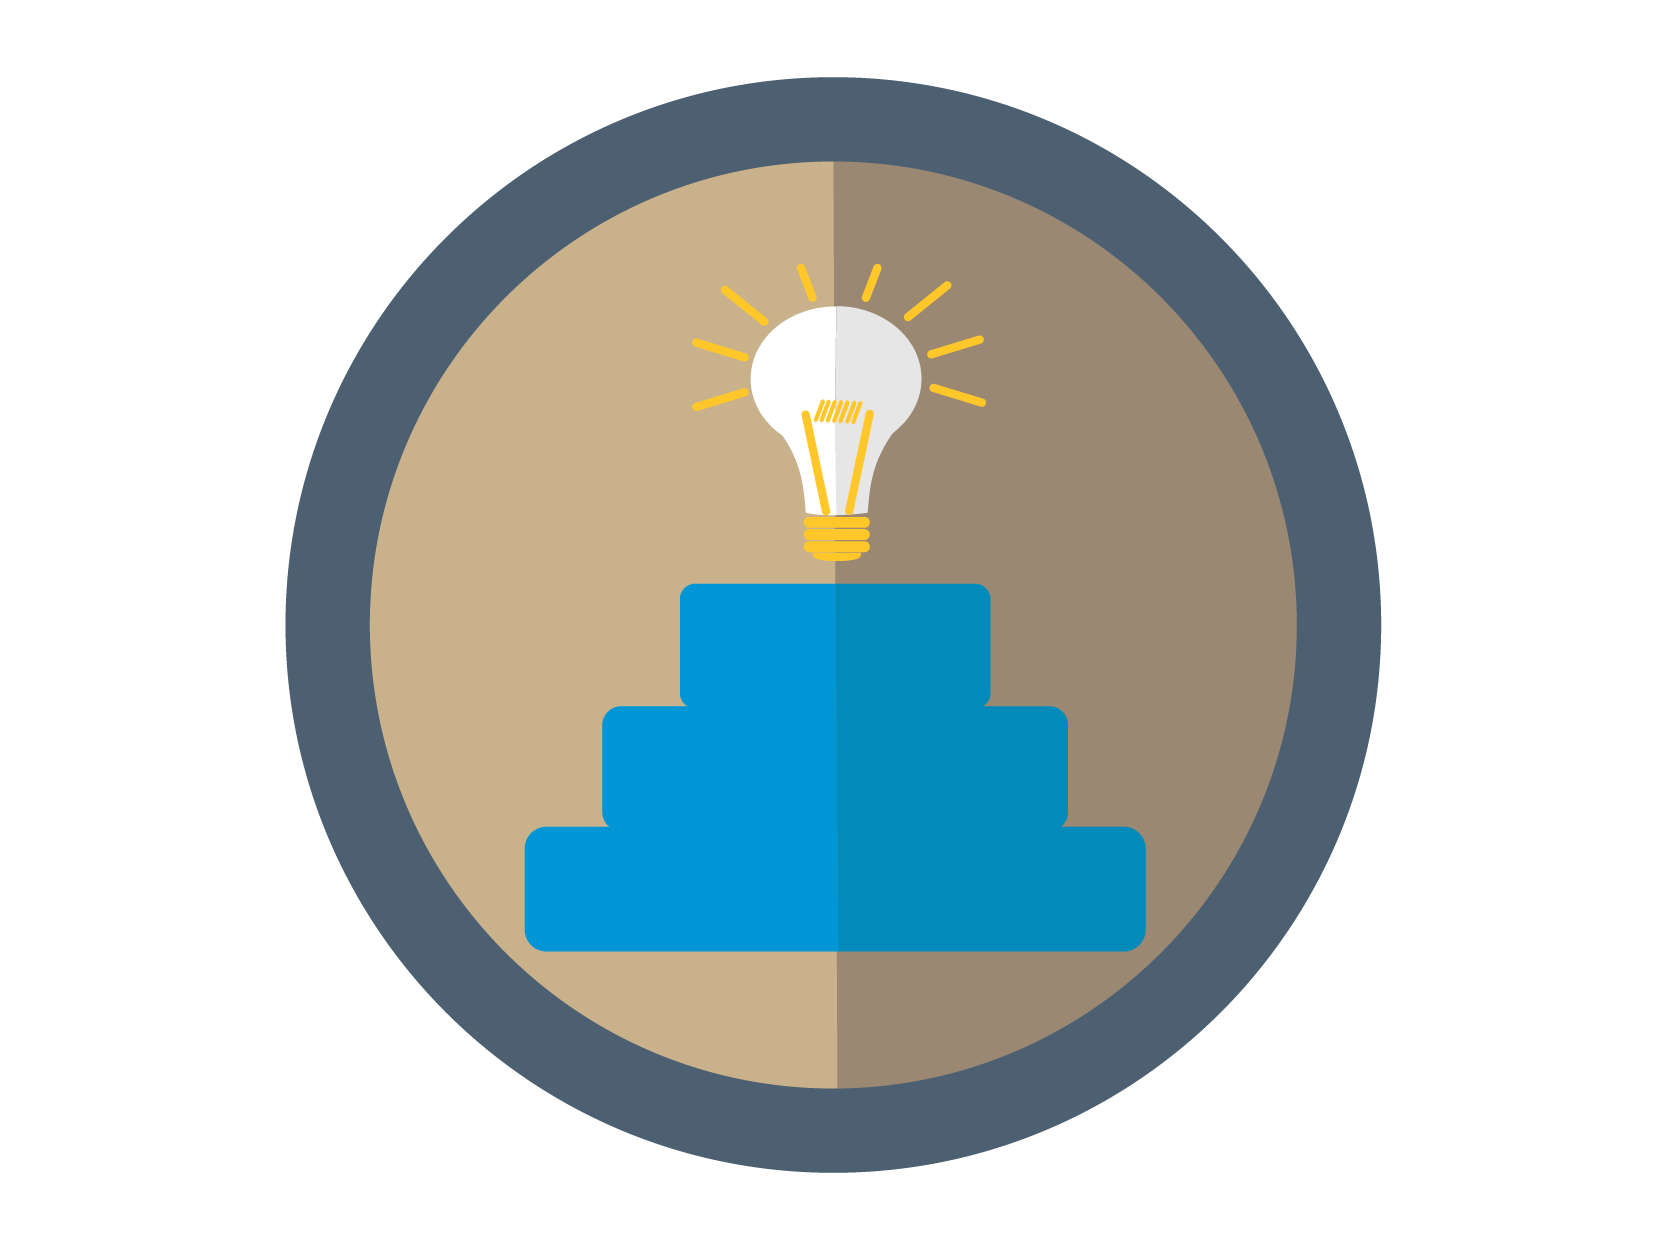 Talent Management Initiative Icon: A light bulb at the top of stairs